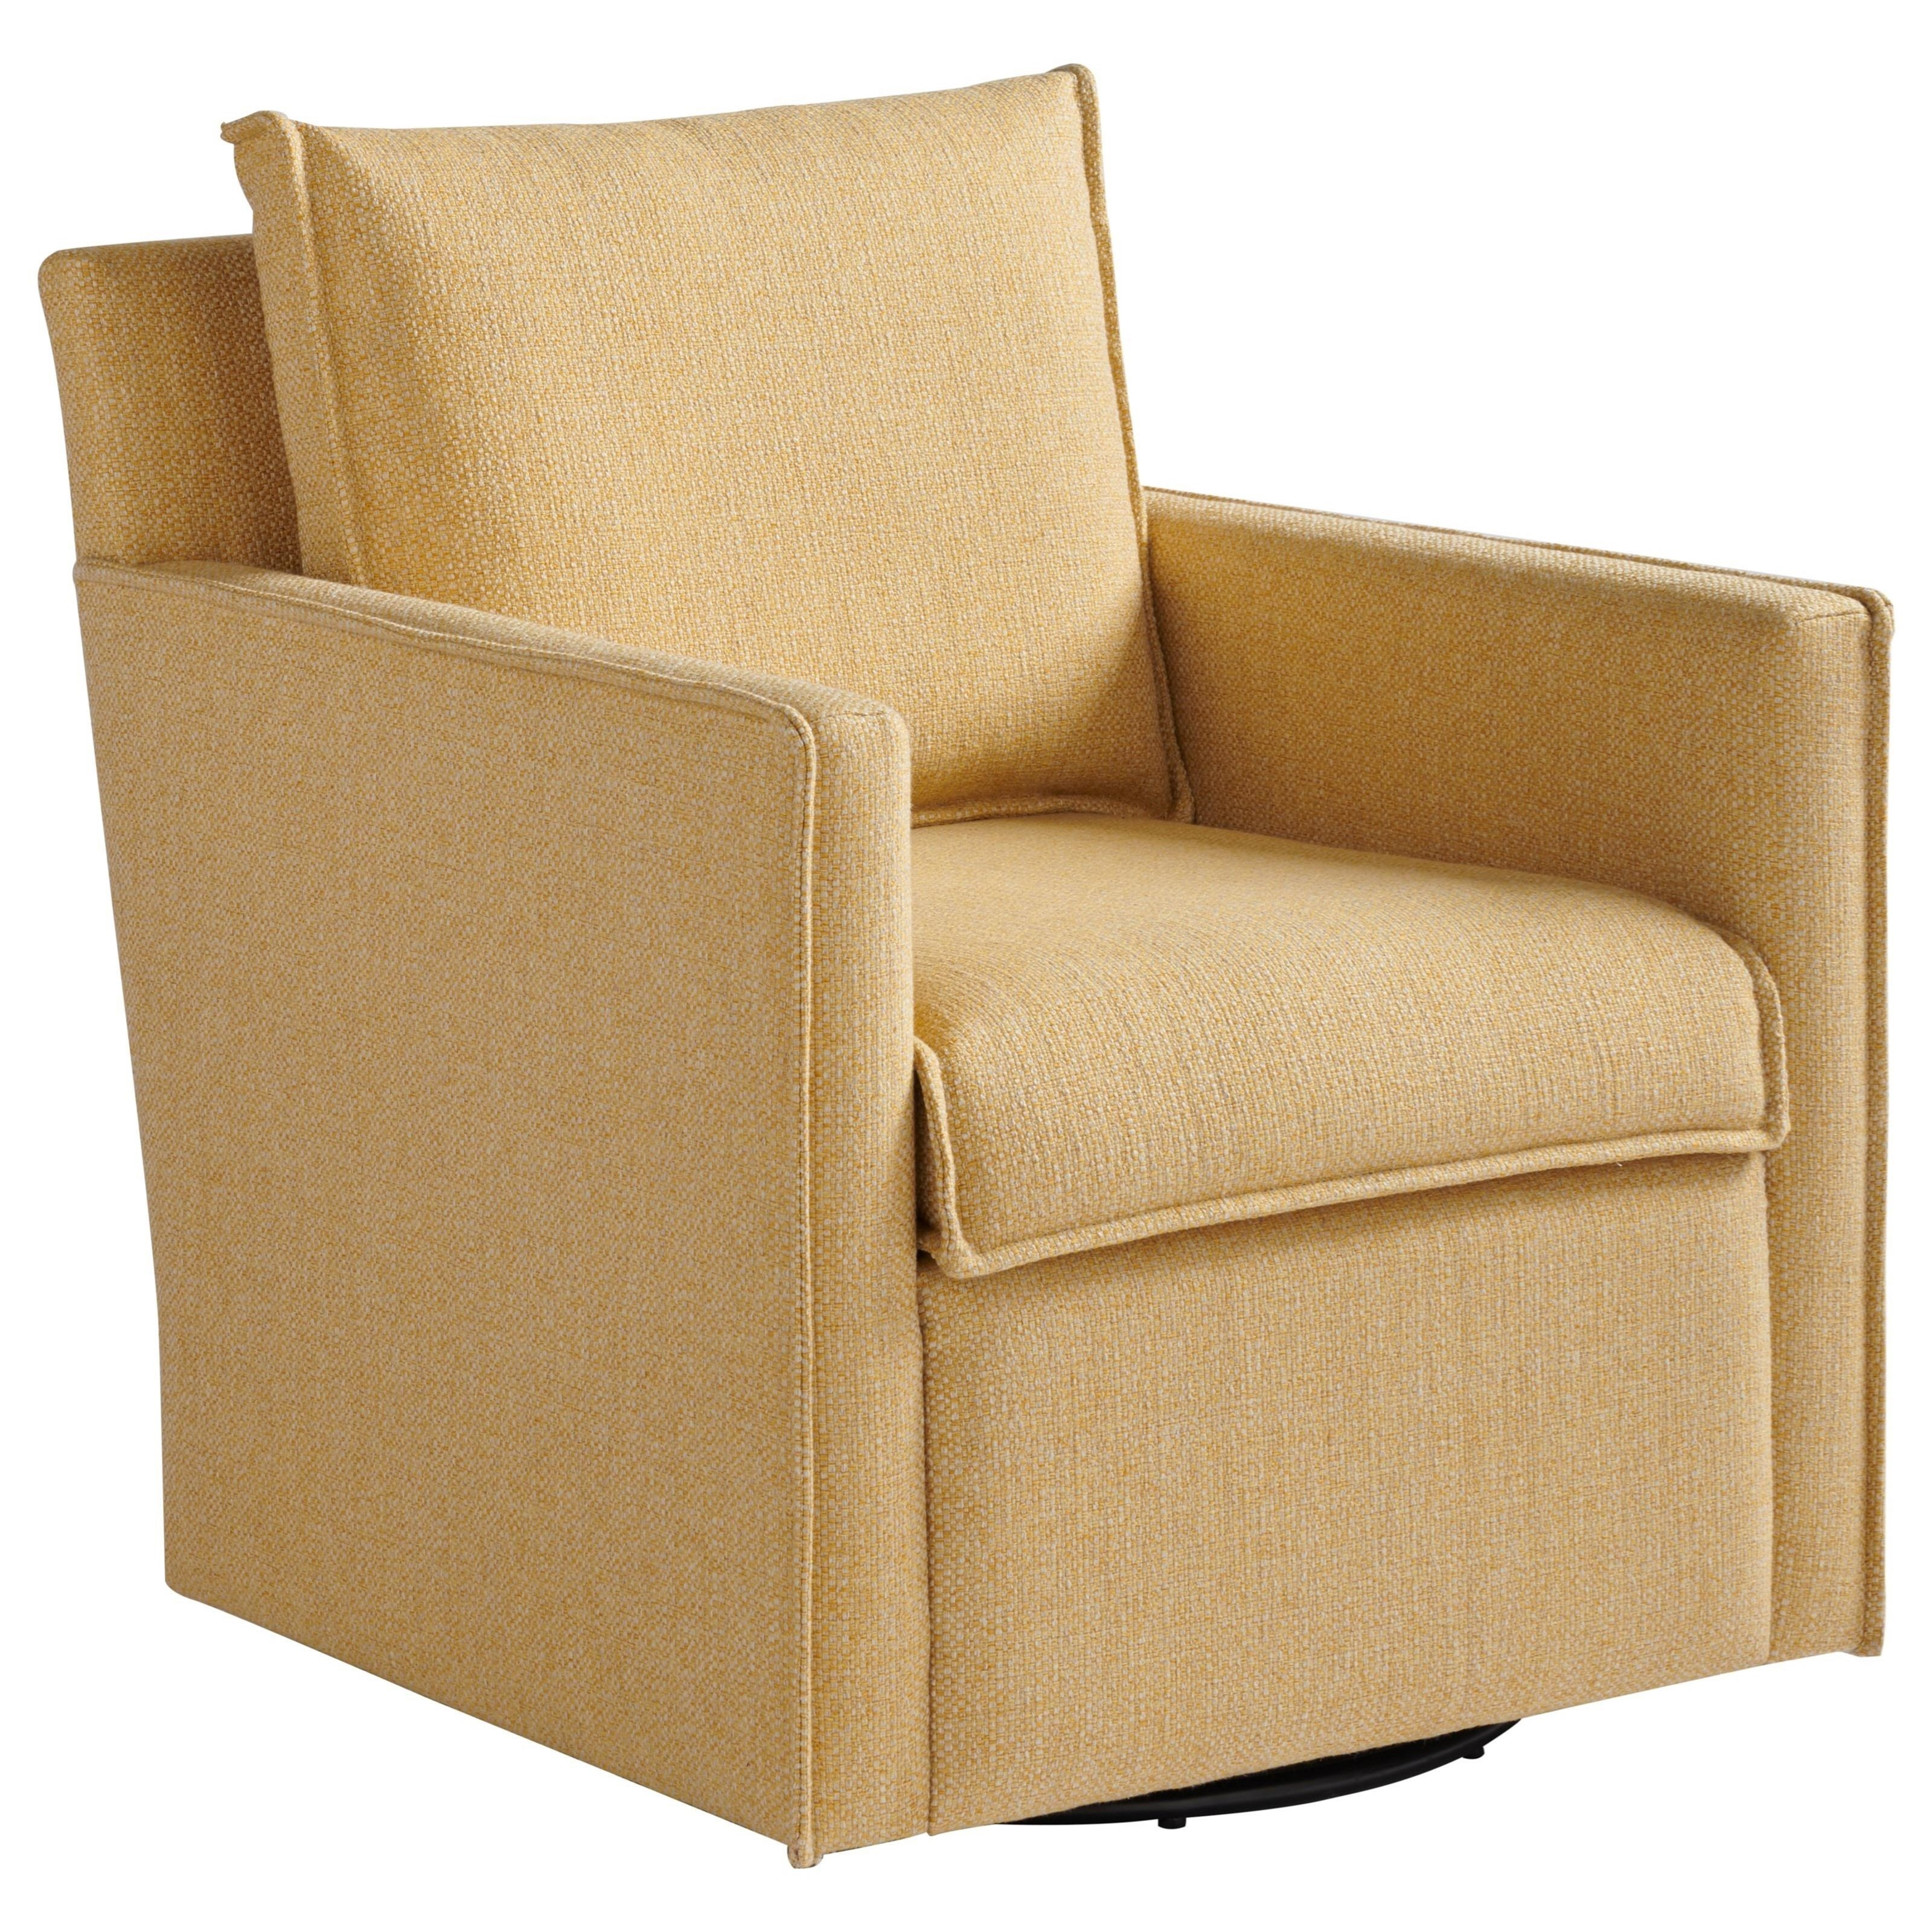 Accent Chairs Barley Swivel Chair by Universal at Baer's Furniture